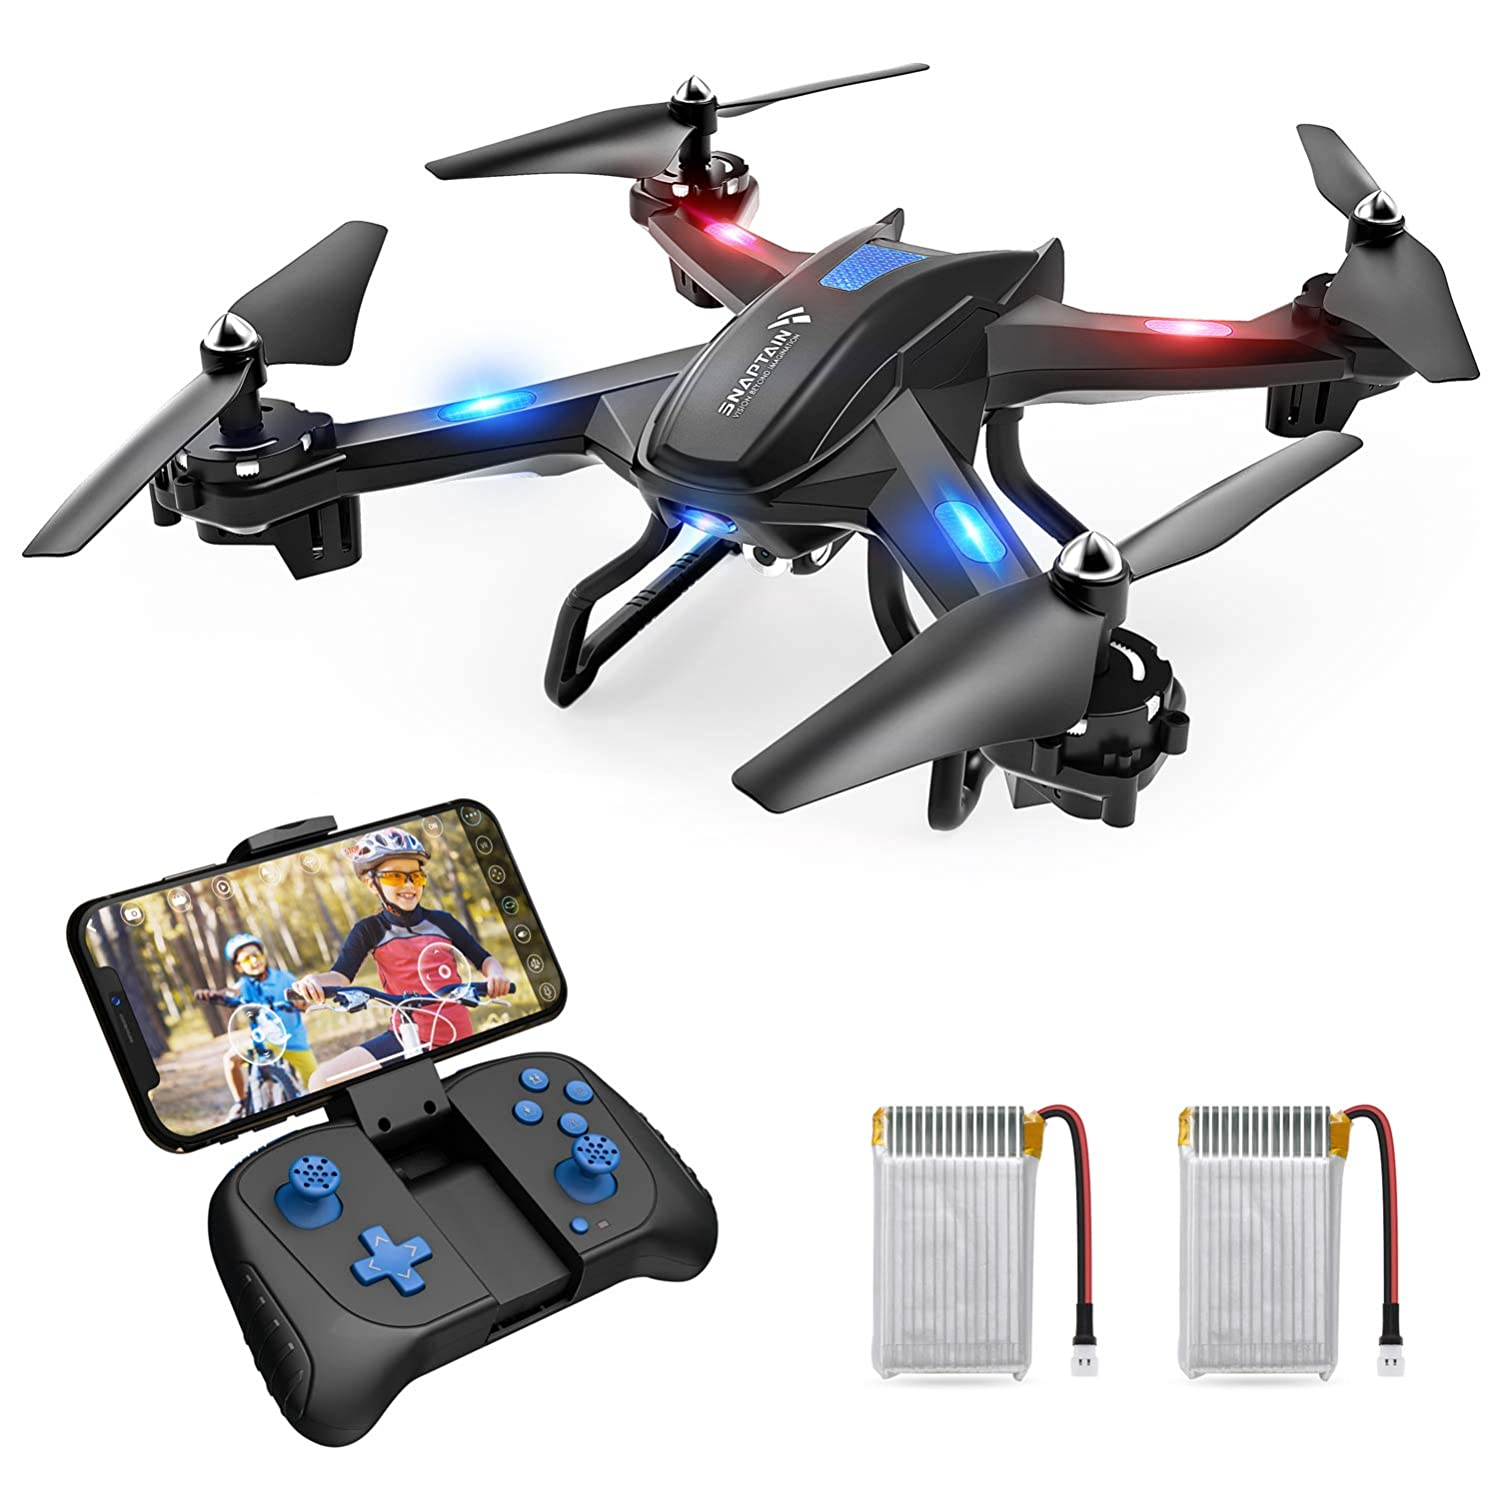 SNAPTAIN S5C Wifi FPV Drone with 720P HD Camera, Best Drone for Beginners with Altitude Hold, Voice Control, G-Sensor, Trajectory Flight, 3D Flips, Headless Mode, One Key Operation, 2 Batteries